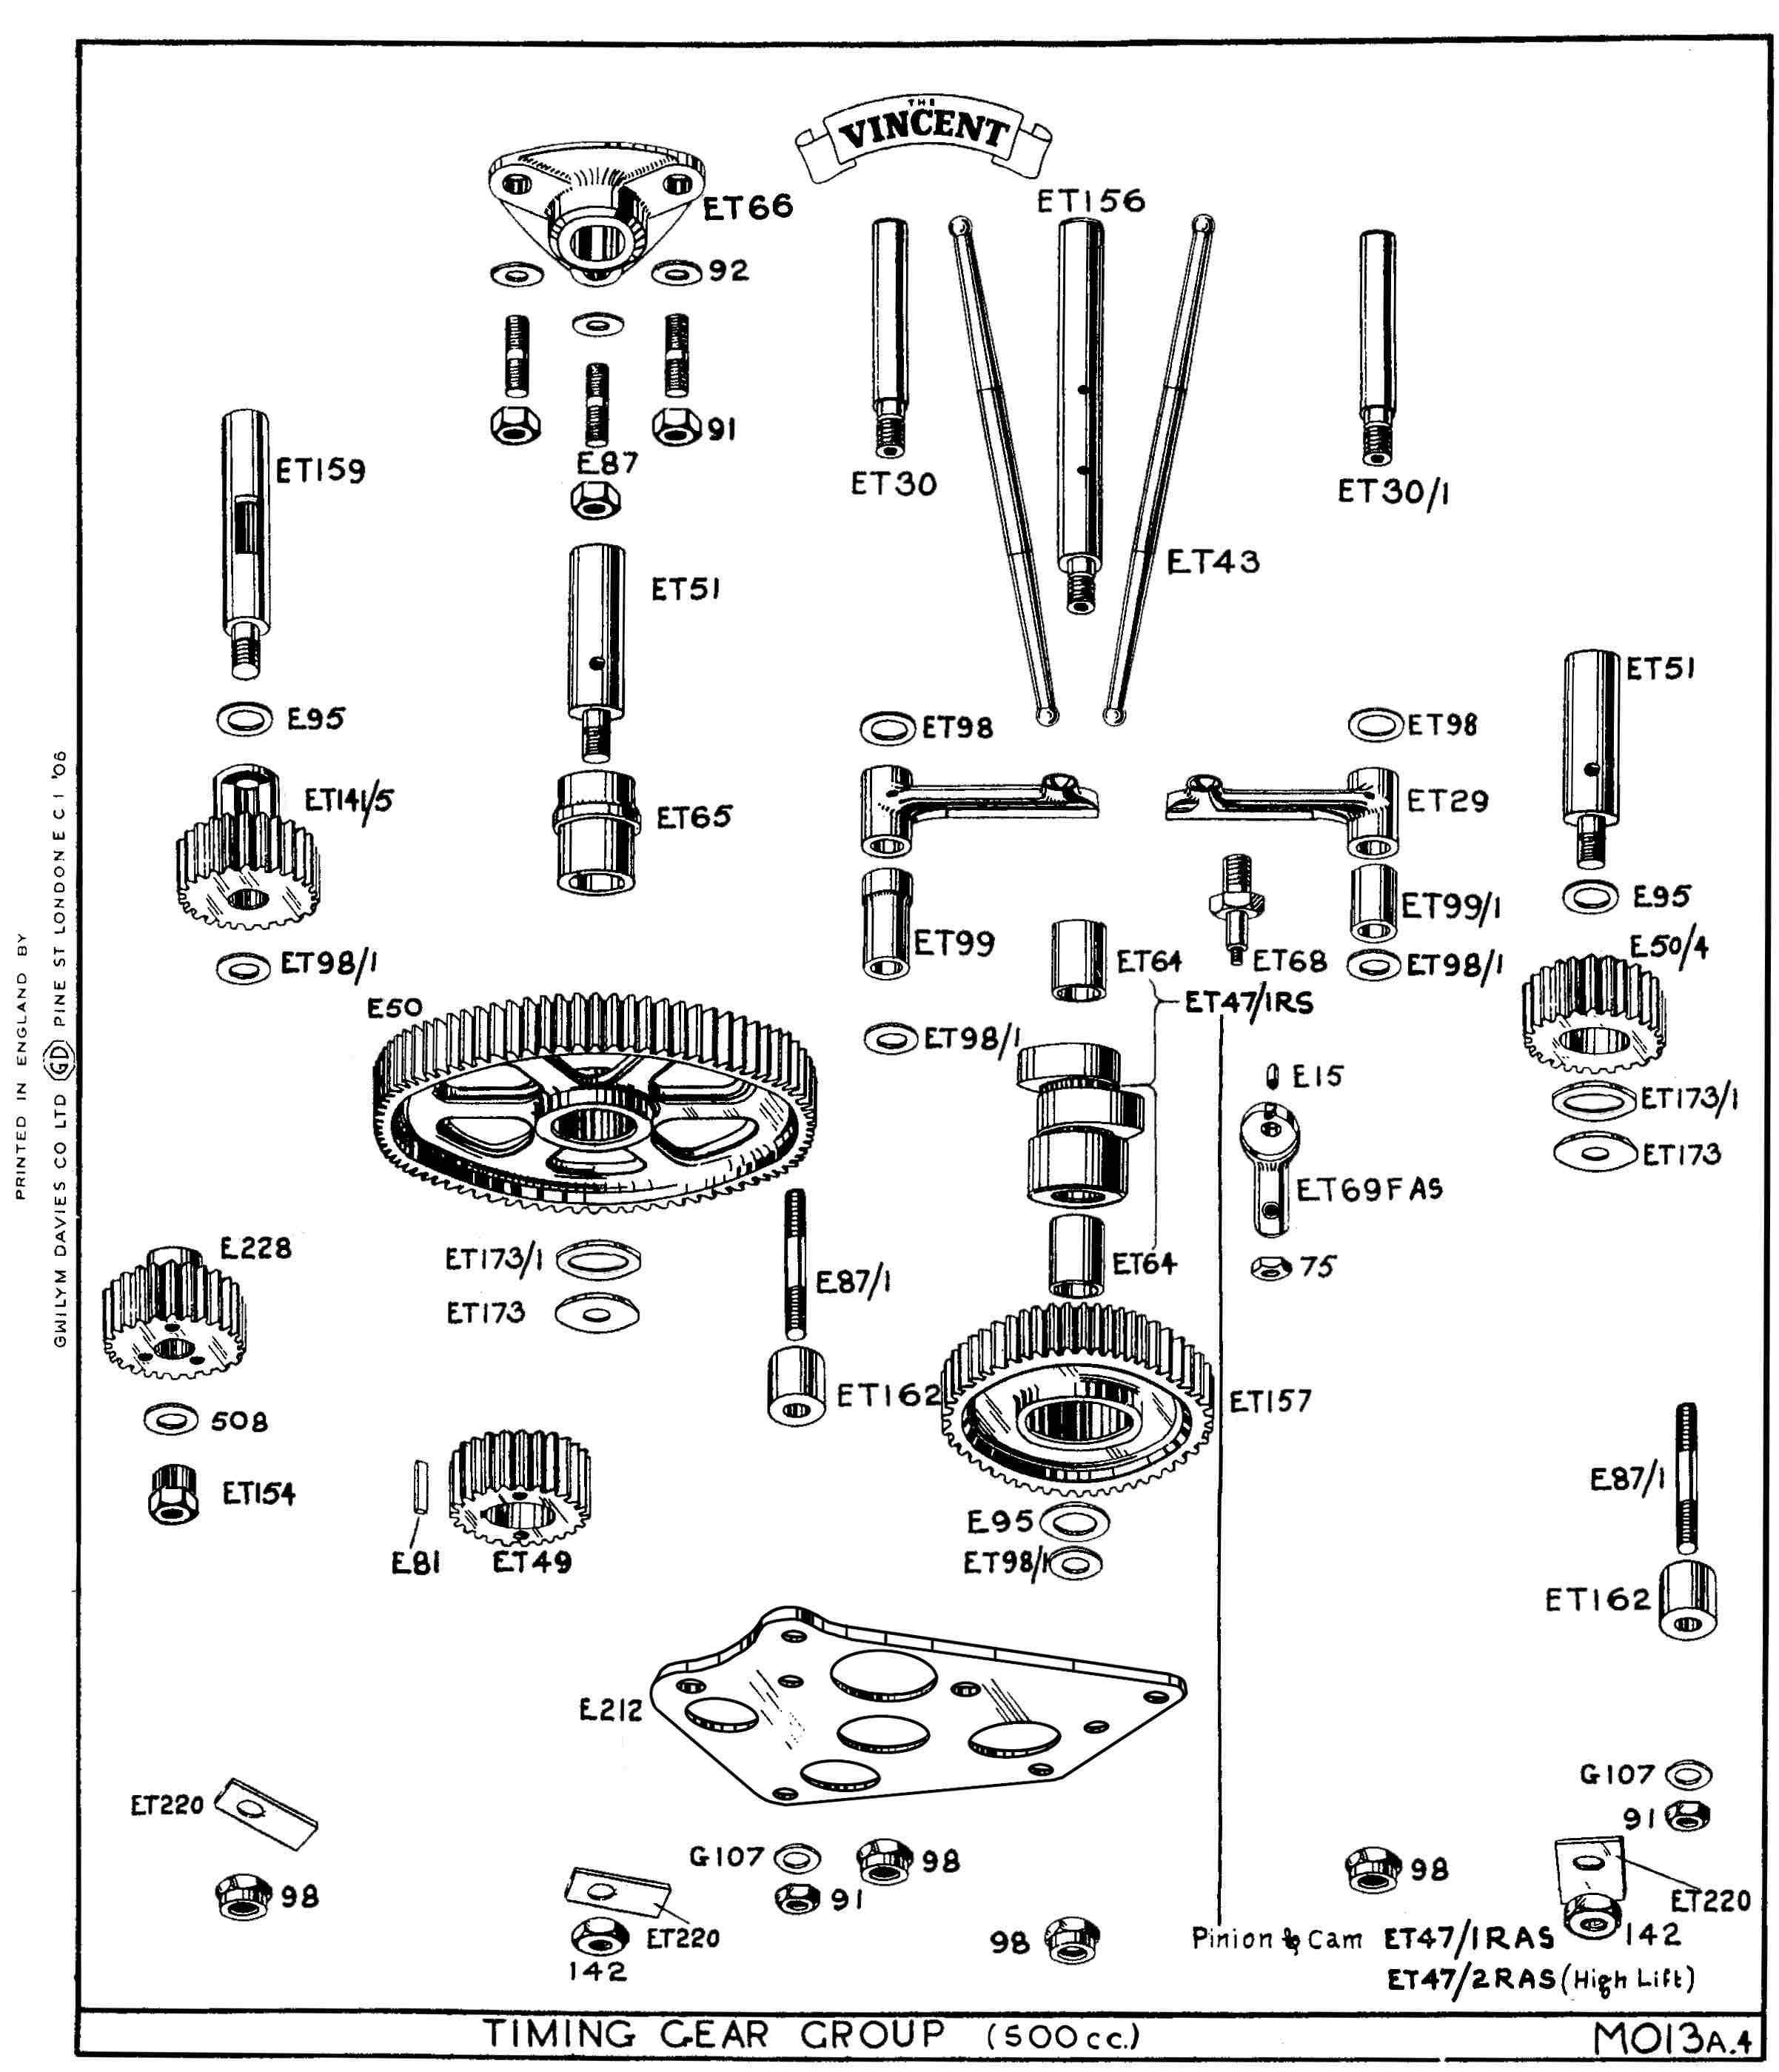 4 Stroke Engine Parts Diagram Vincent Engine Technical Information Of 4 Stroke Engine Parts Diagram